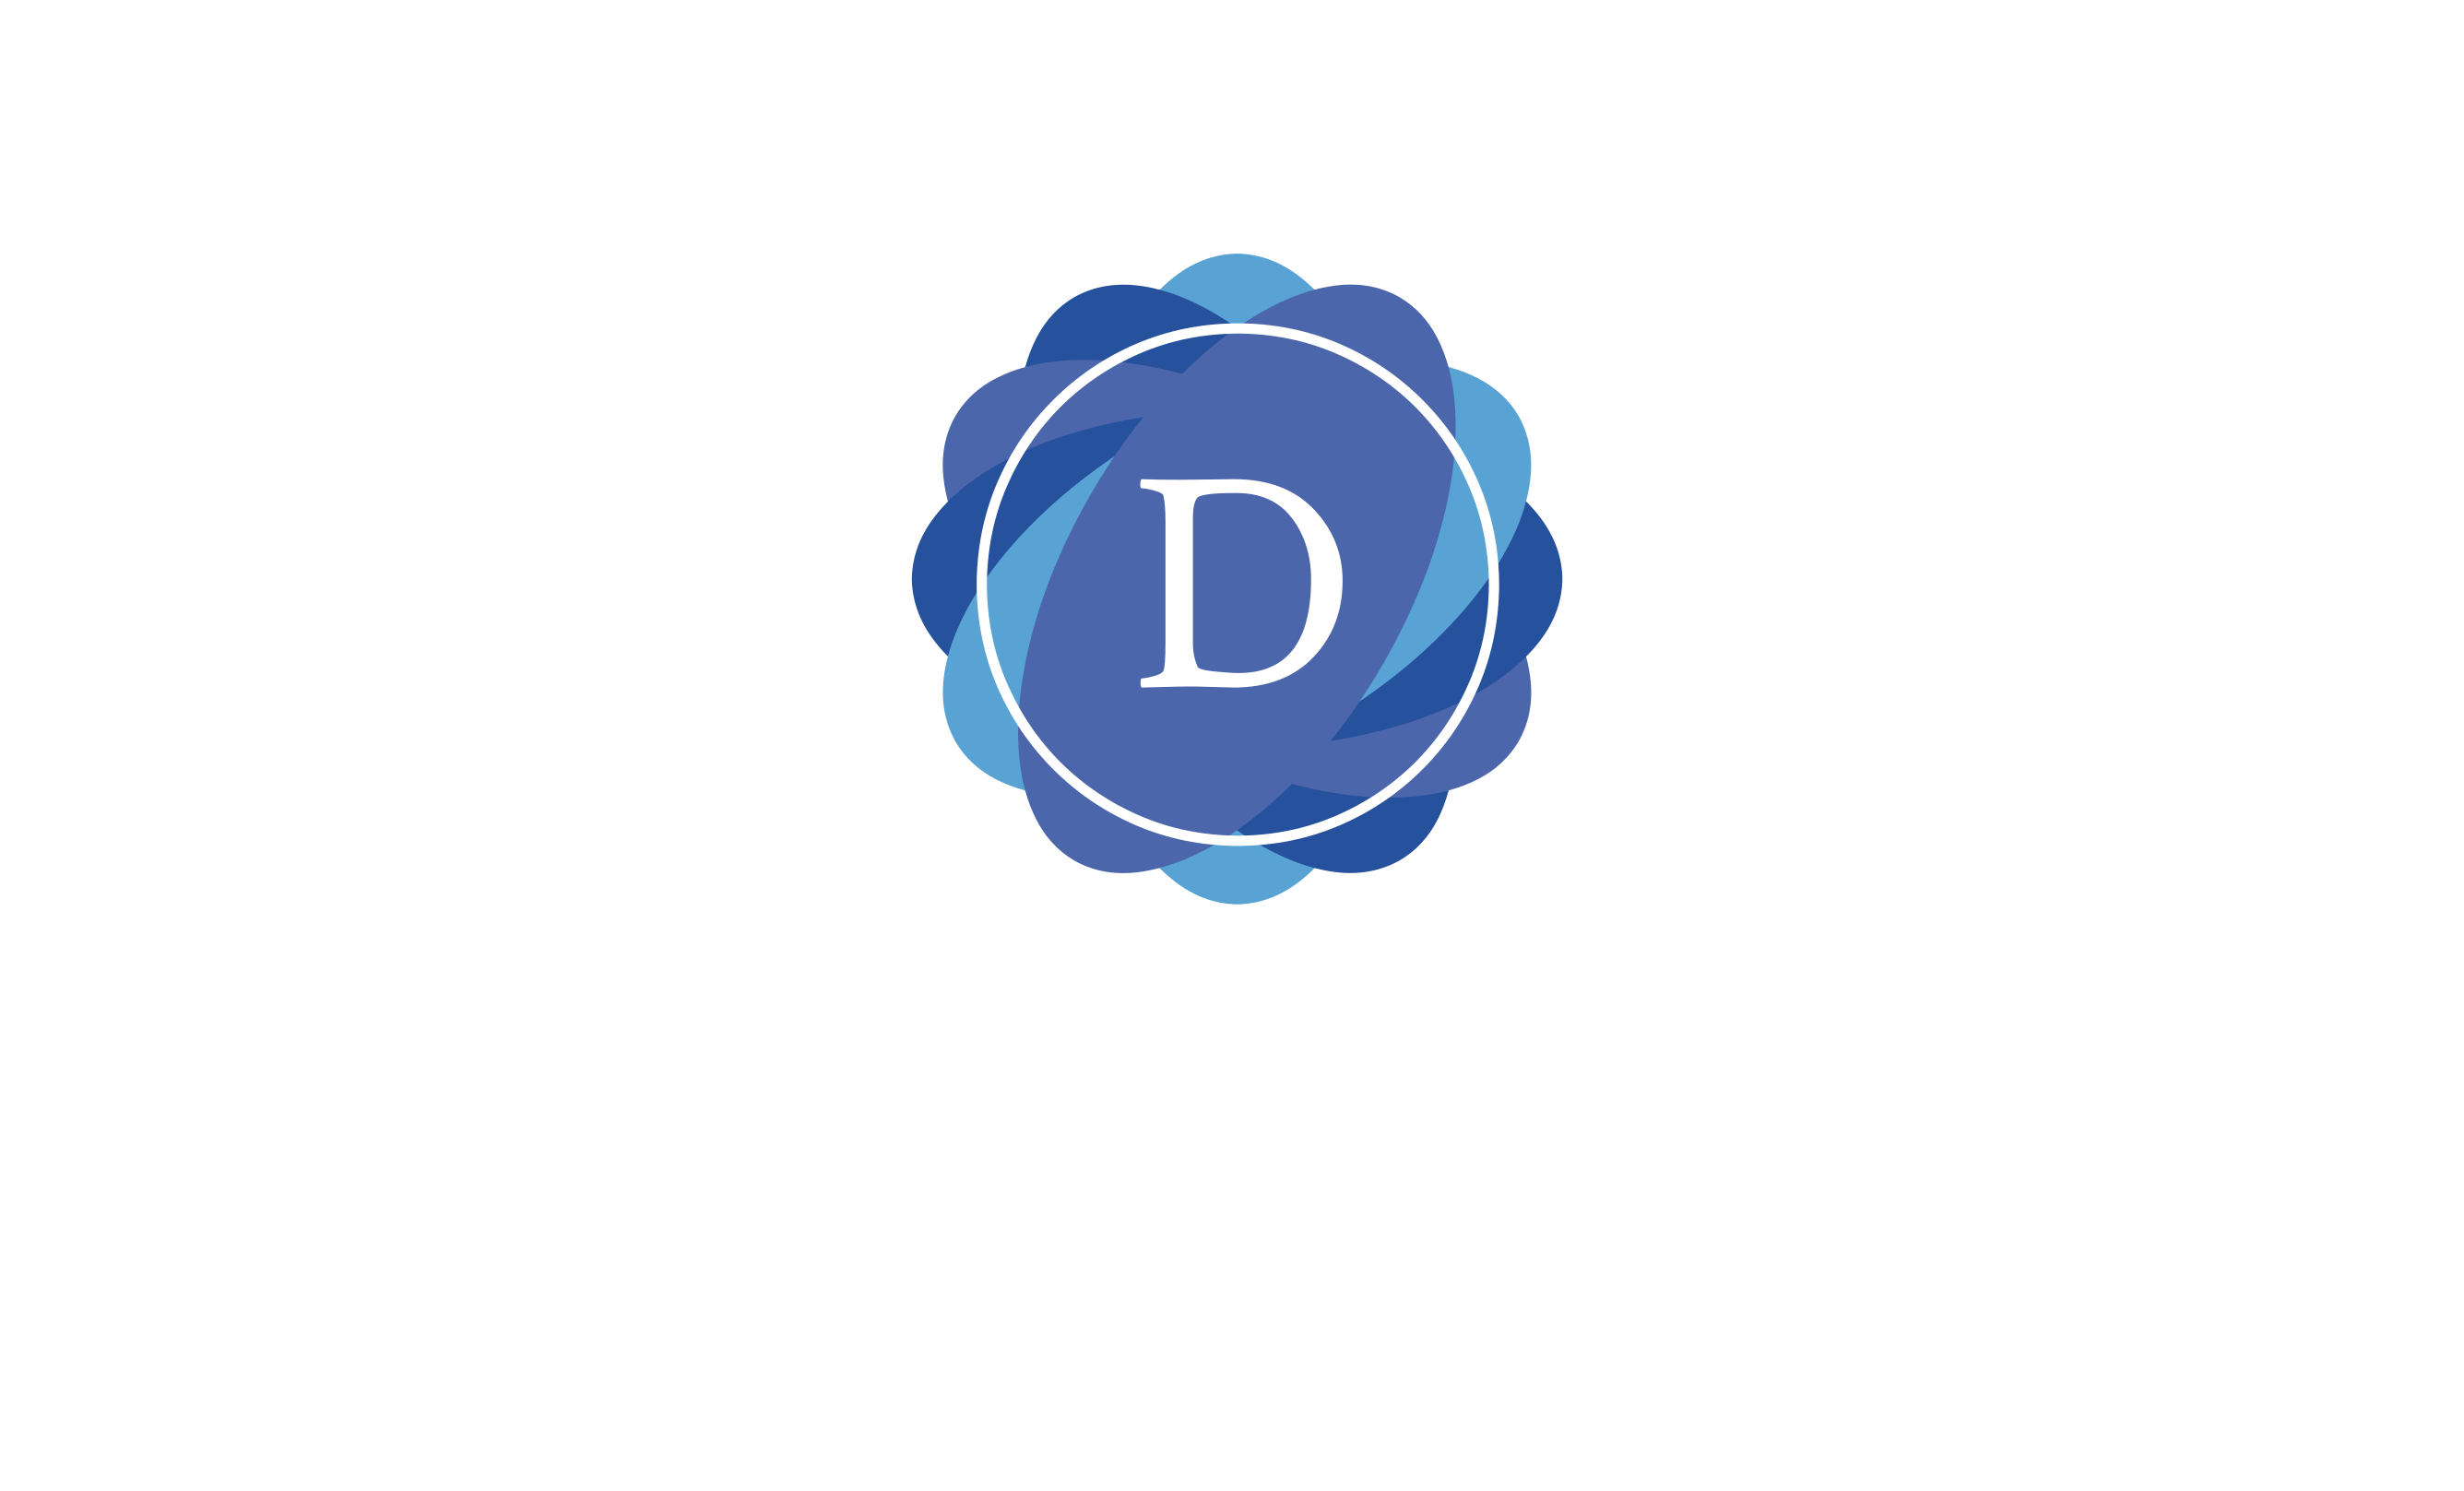 dream it marketing